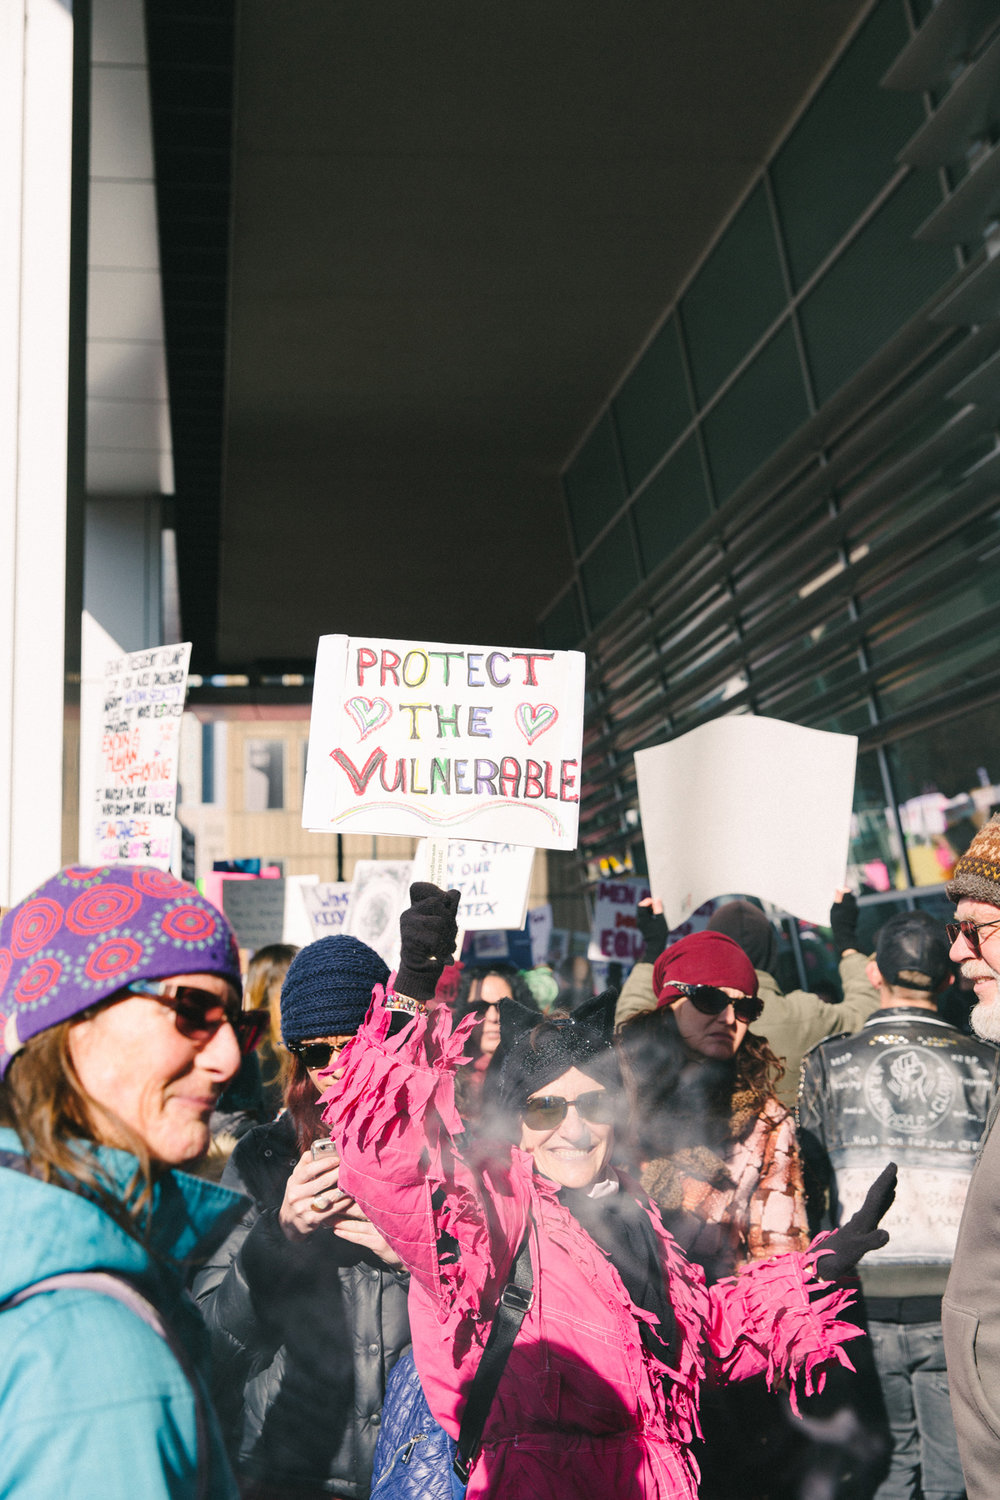 022-womens-march--denver--colorado--photo--love-trumps-hate--pussy-power--forget-me-not-media--rally.jpg